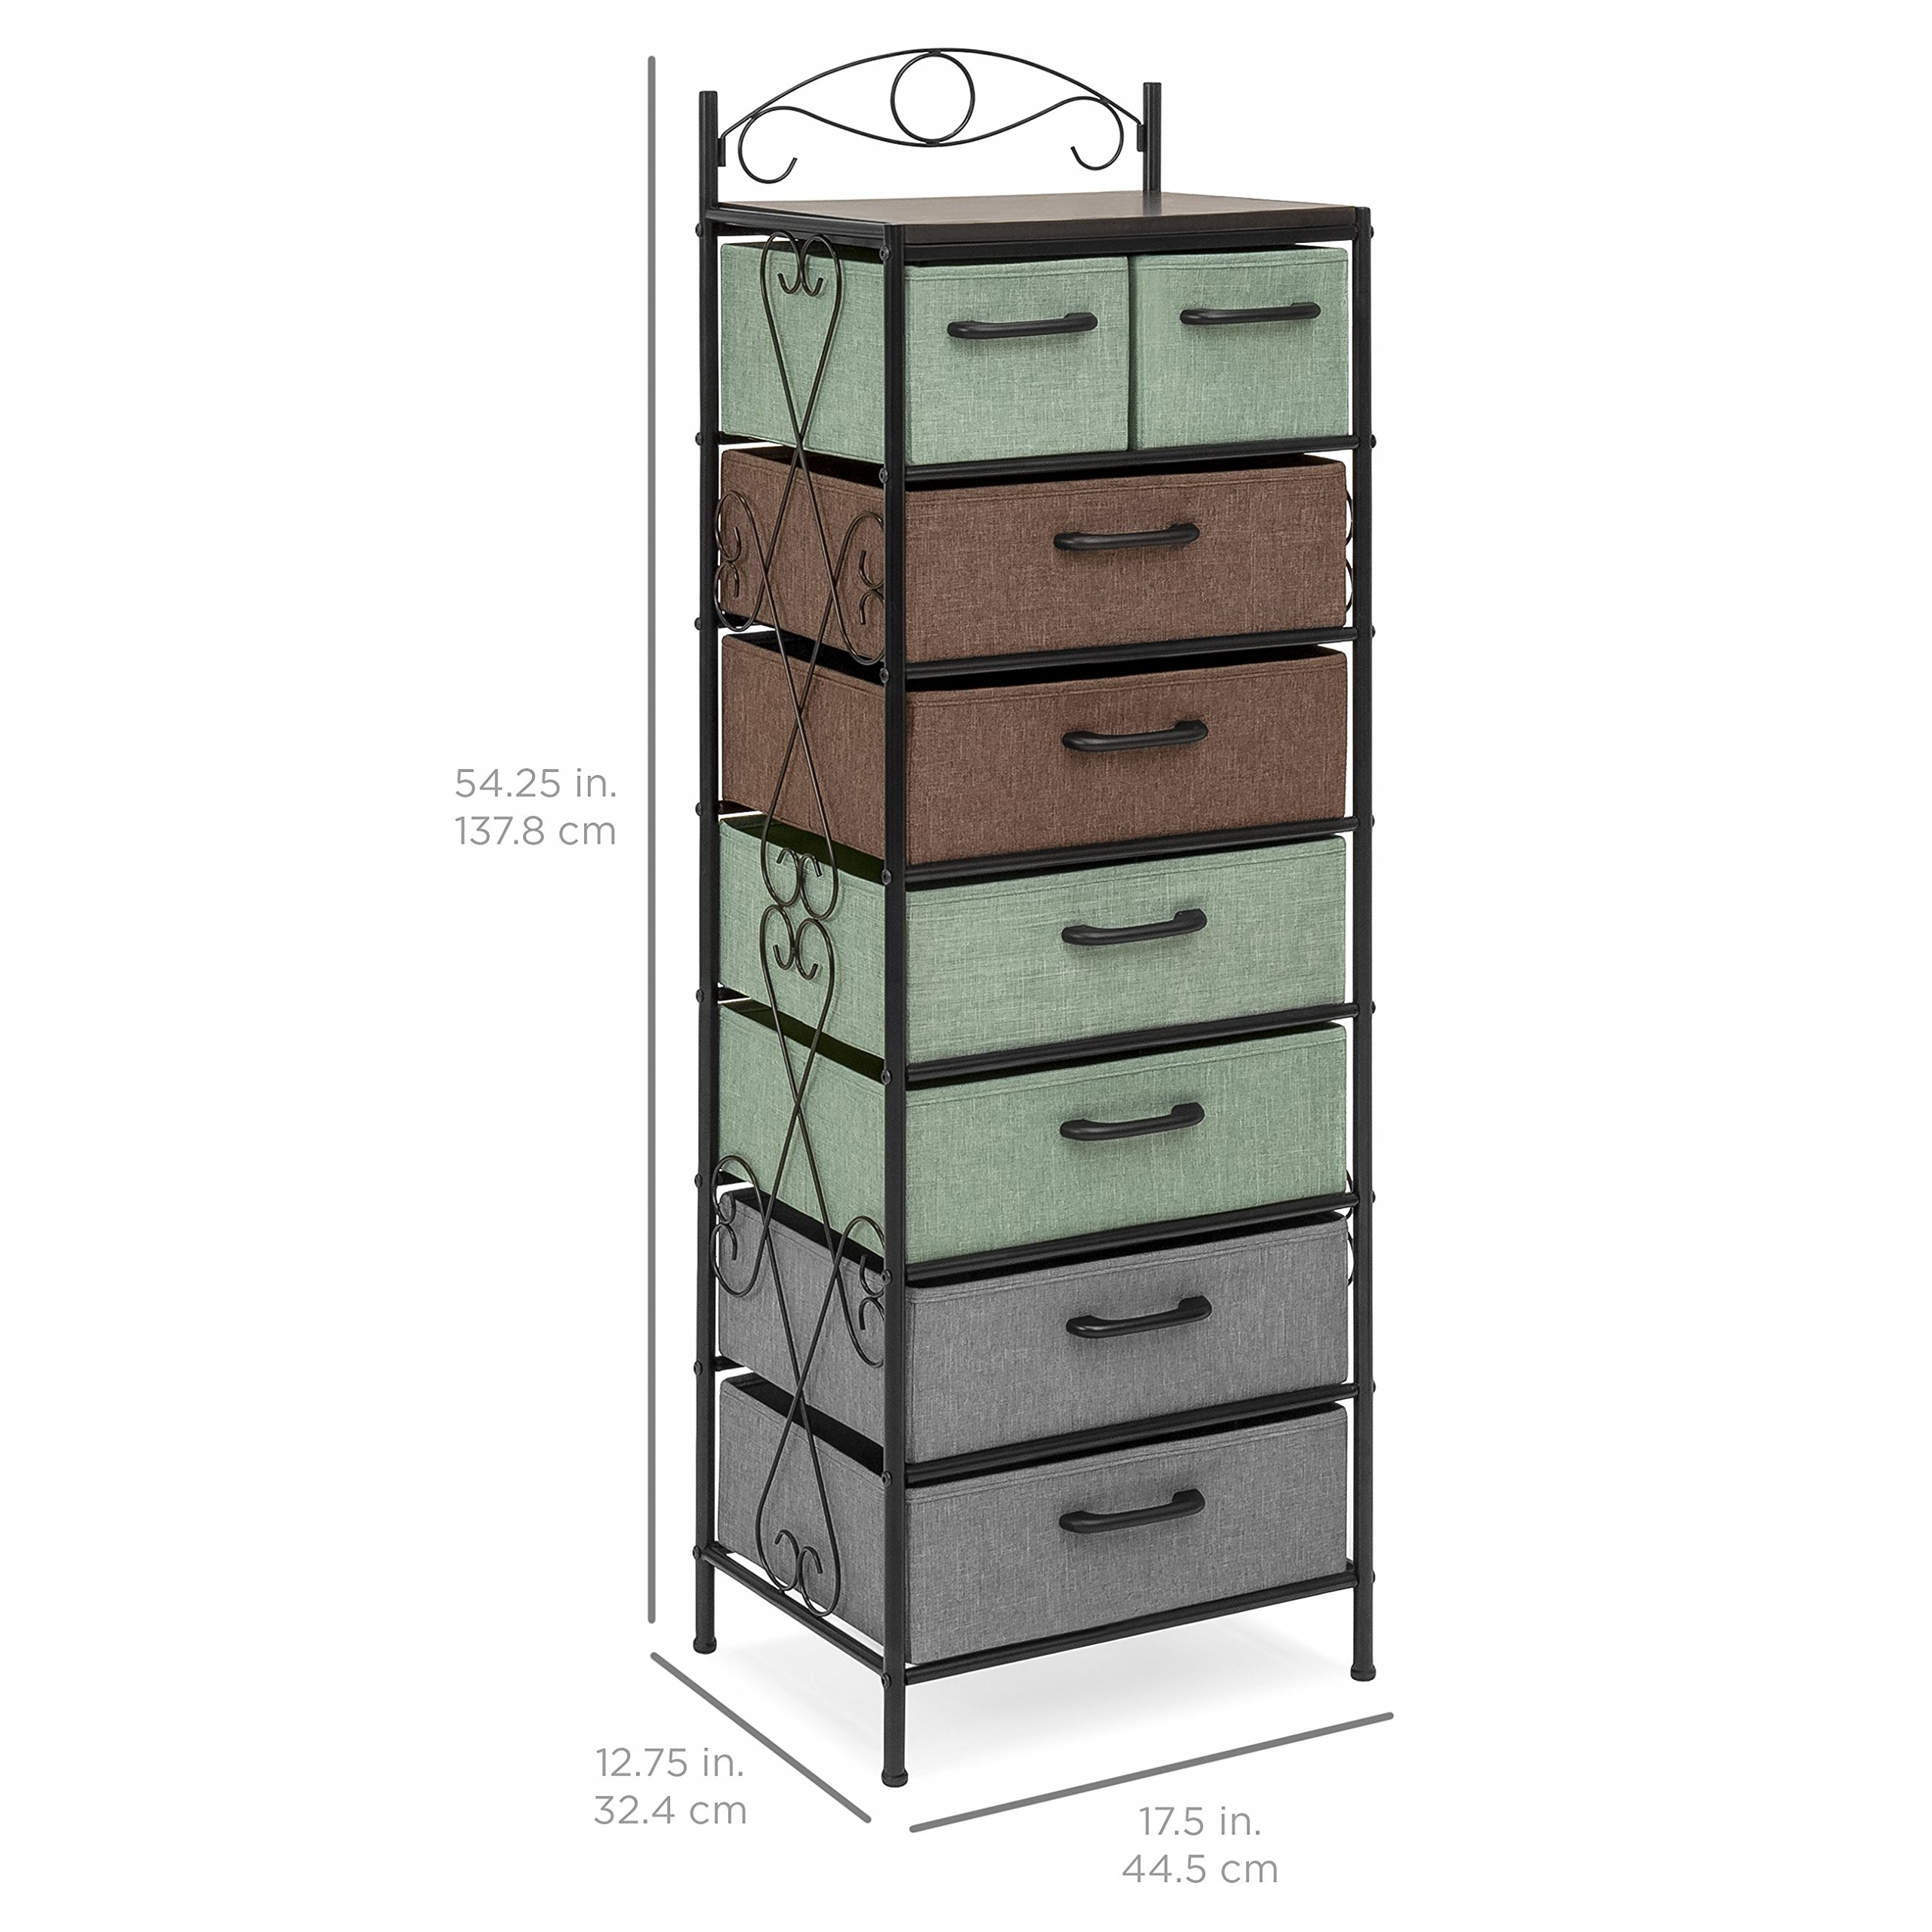 Best Choice Products 8-Drawer Metal Tower Storage Cabinet (Multicolor) by Best Choice Products (Image #6)